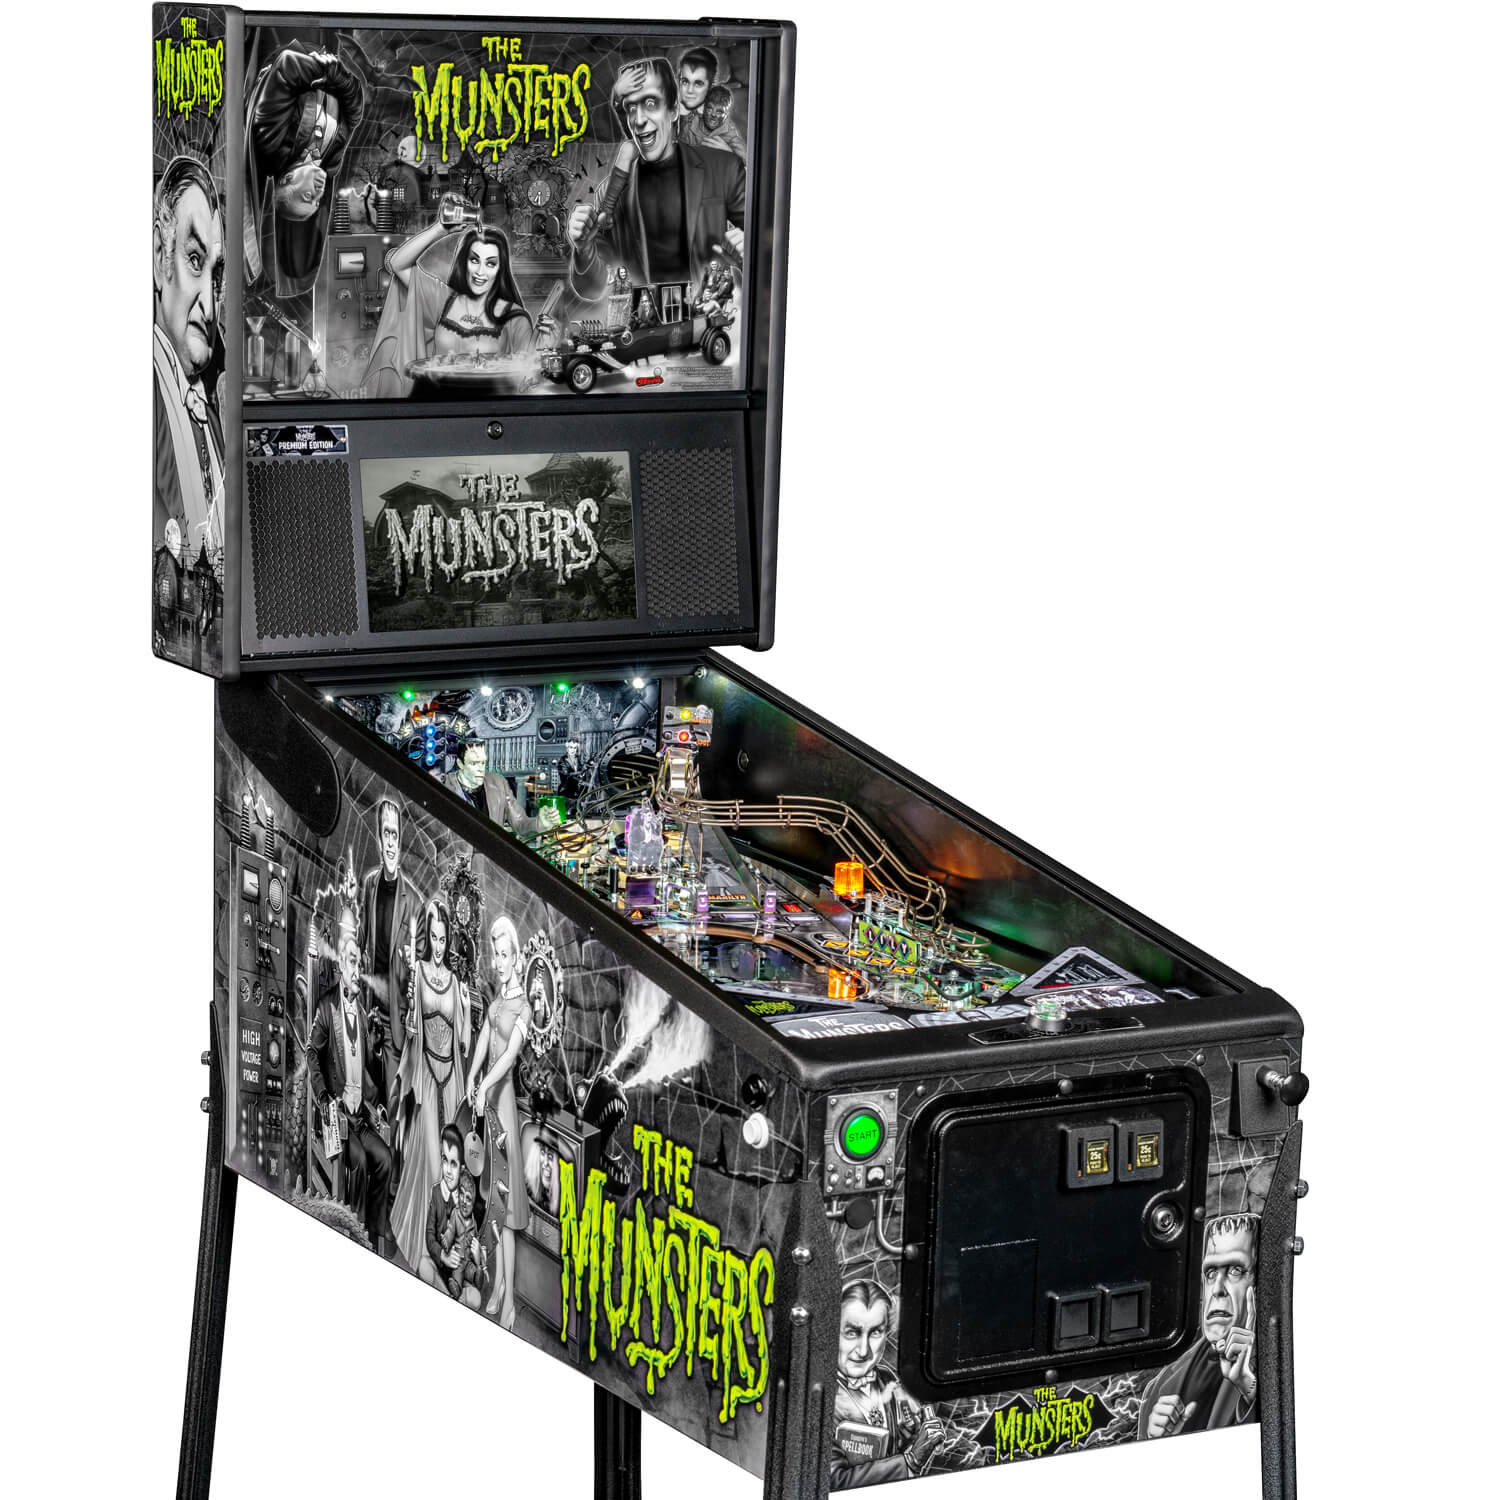 Stern The Munsters Premium Pinball Machine Liberty Games